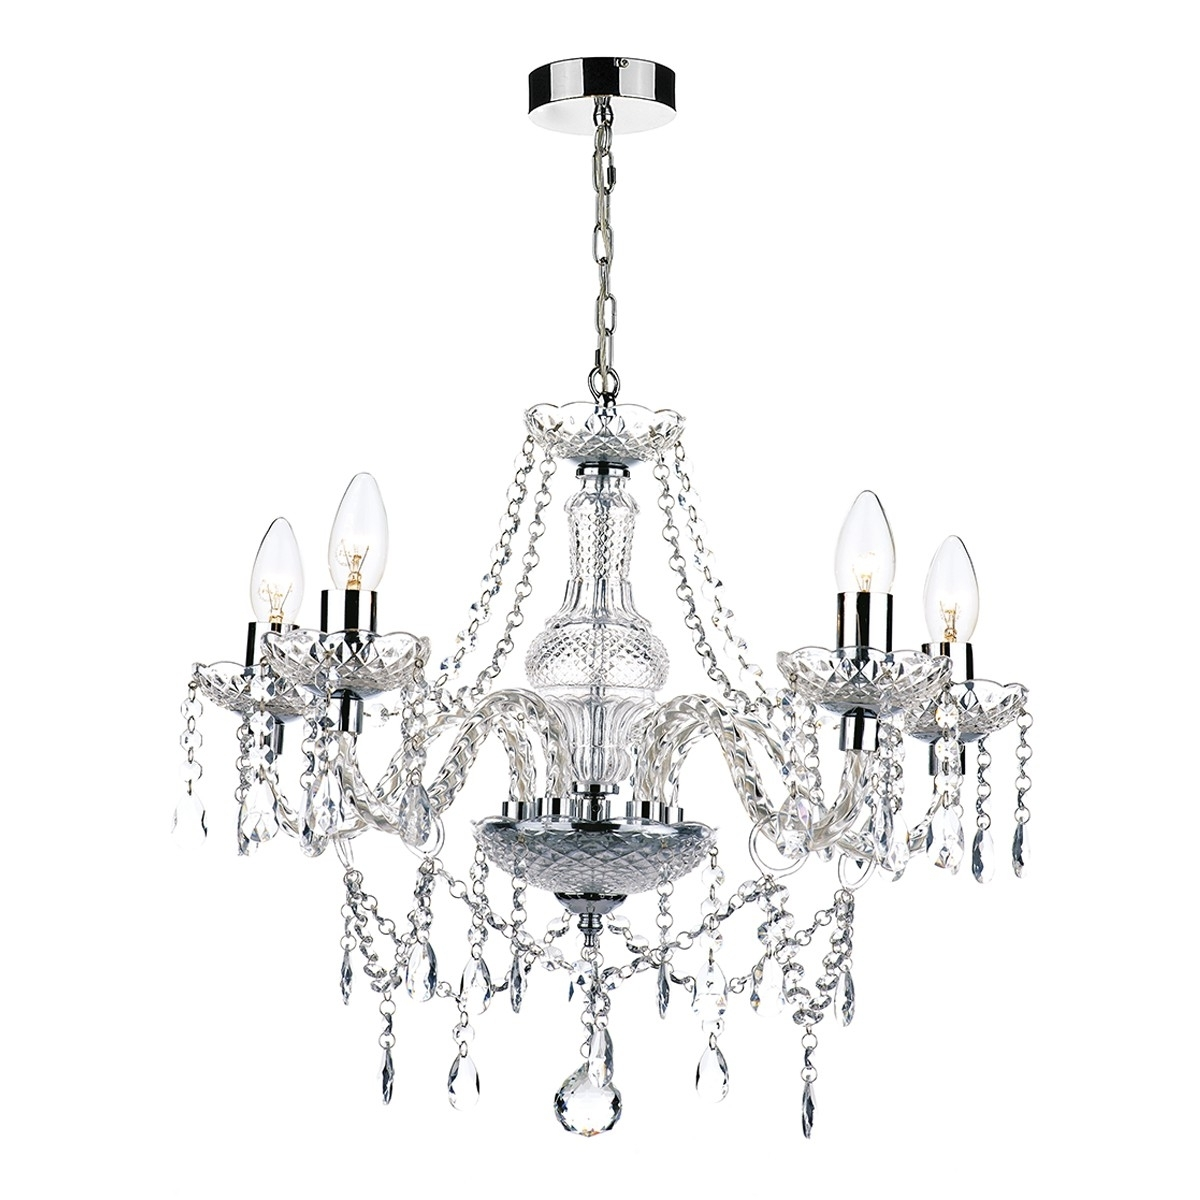 Modern Chrome Chandeliers Pertaining To Famous Light : Light Chandelier Katie Polished Chrome Acrylic Glass Silver (View 12 of 20)